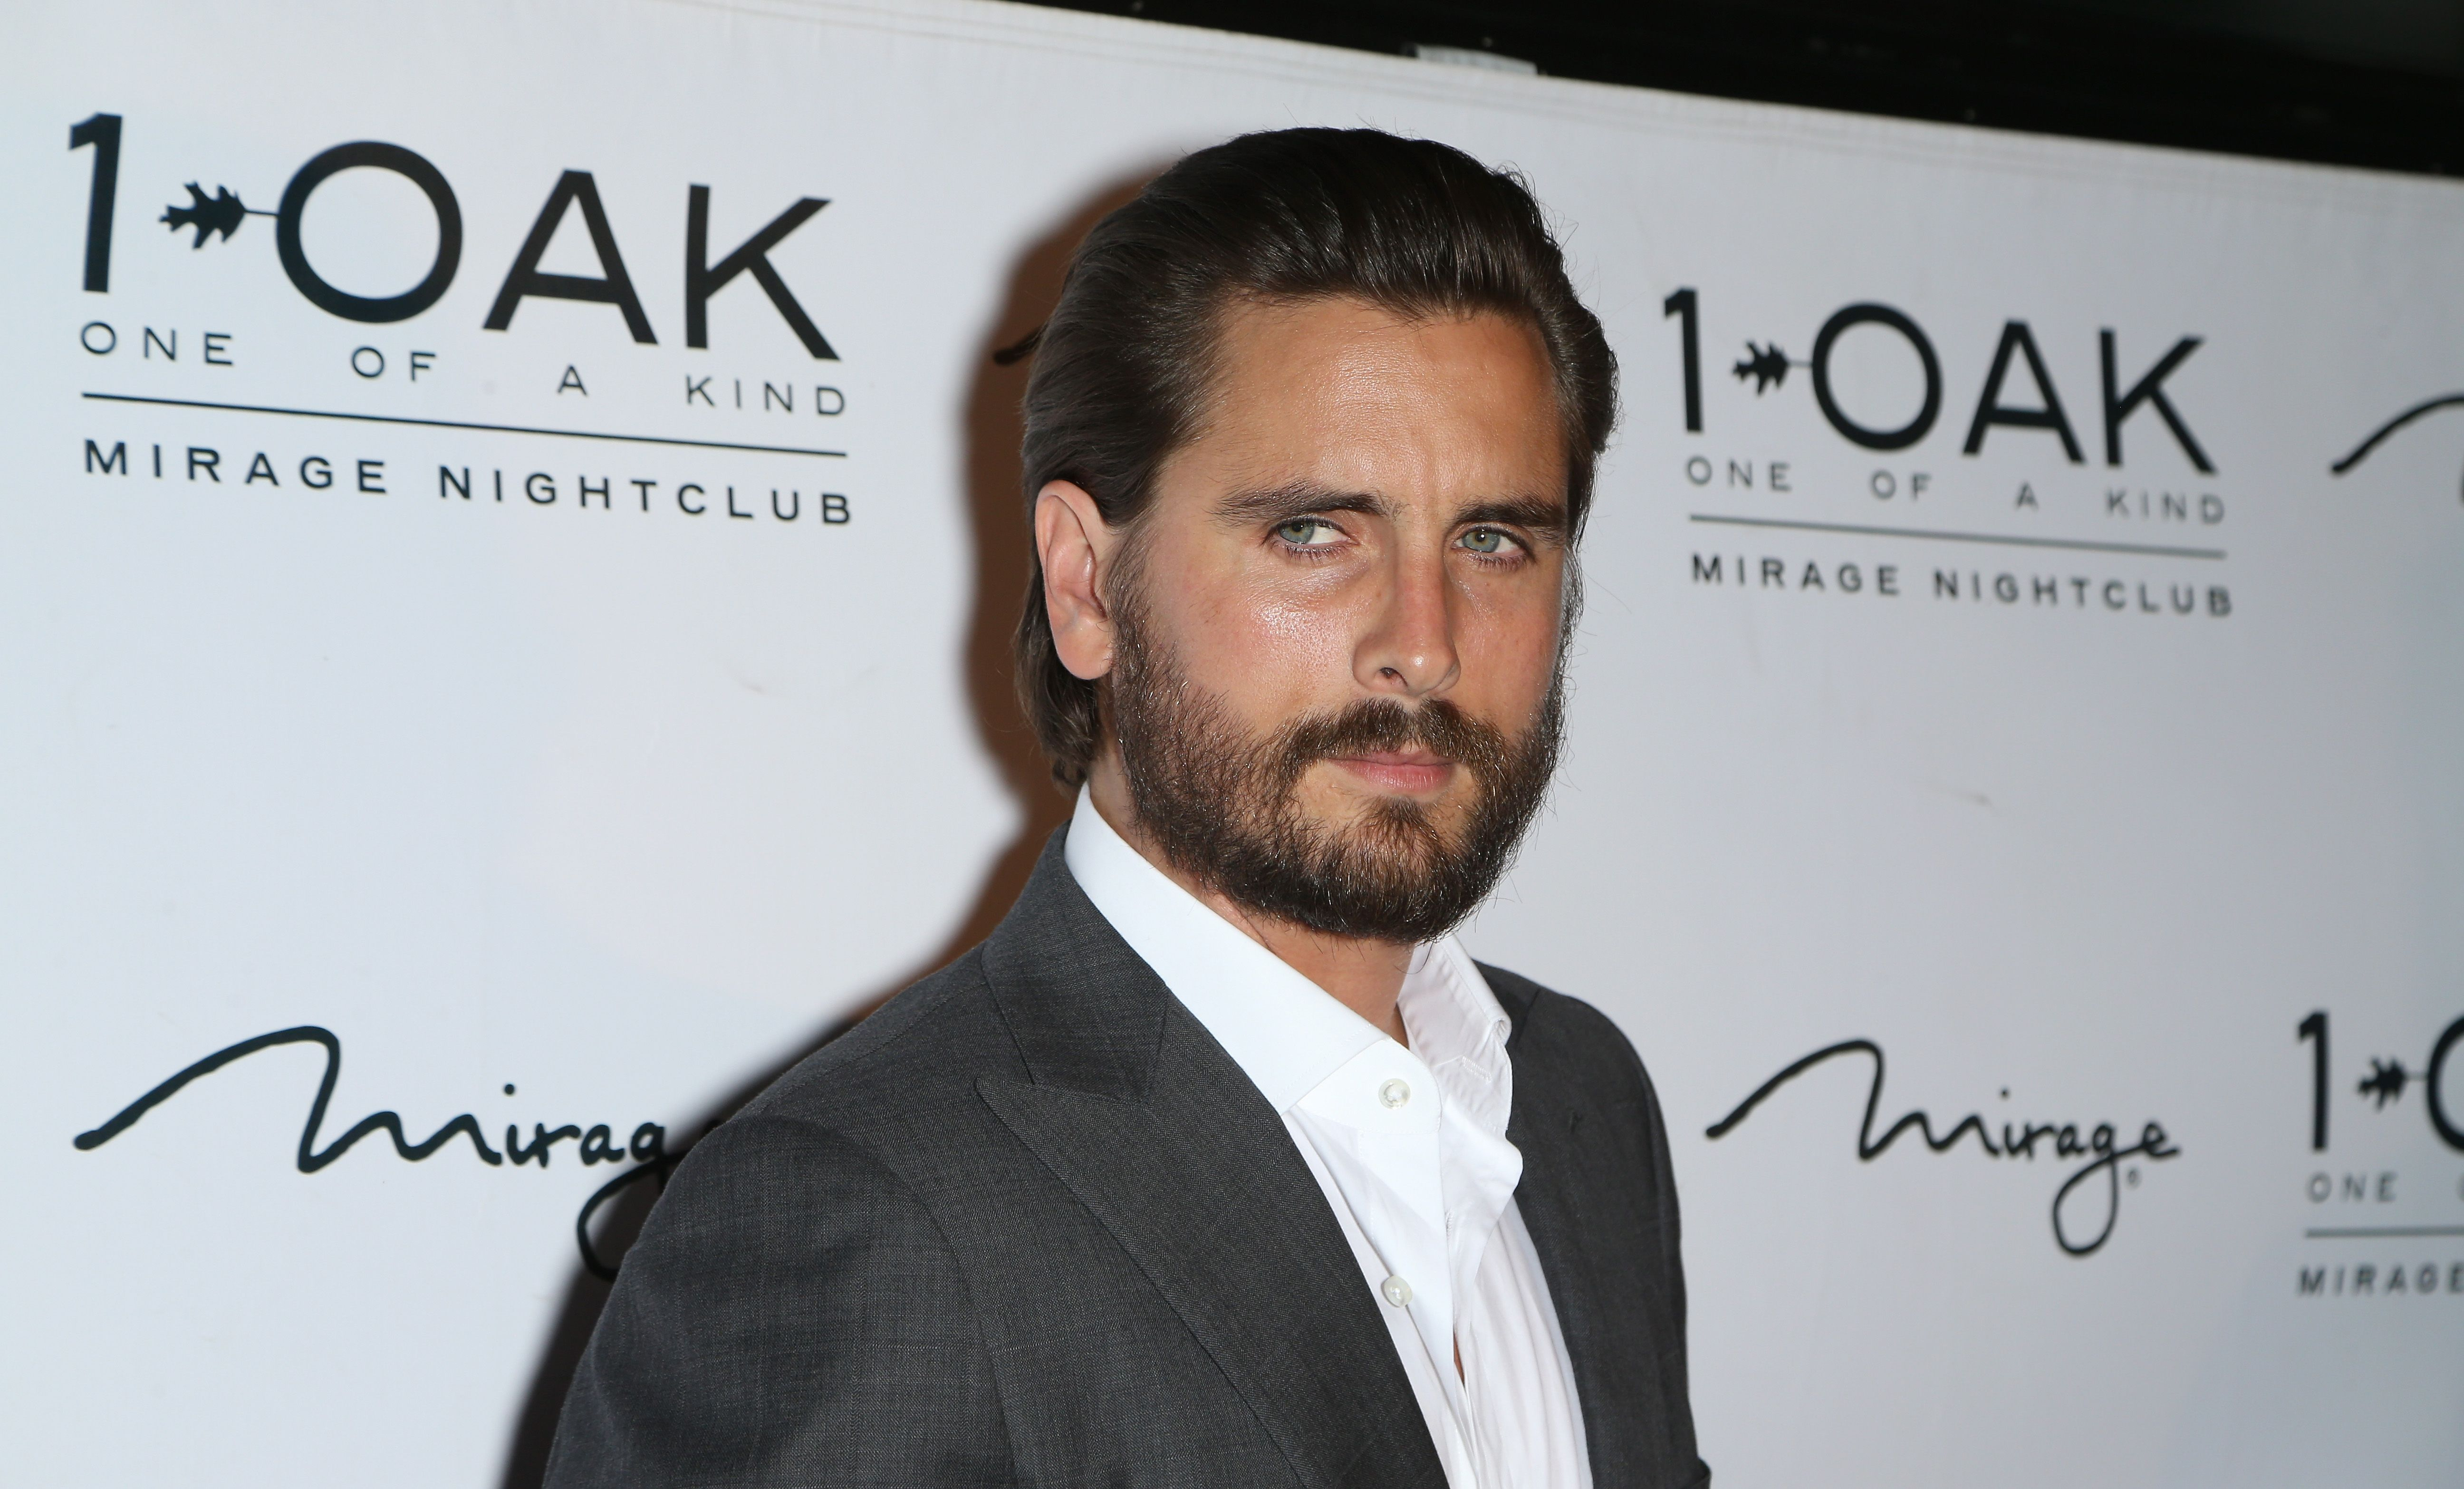 Television personality Scott Disick at 1 OAK Nightclub at The Mirage Hotel & Casino on July 25, 2015 | Photo: Getty Images